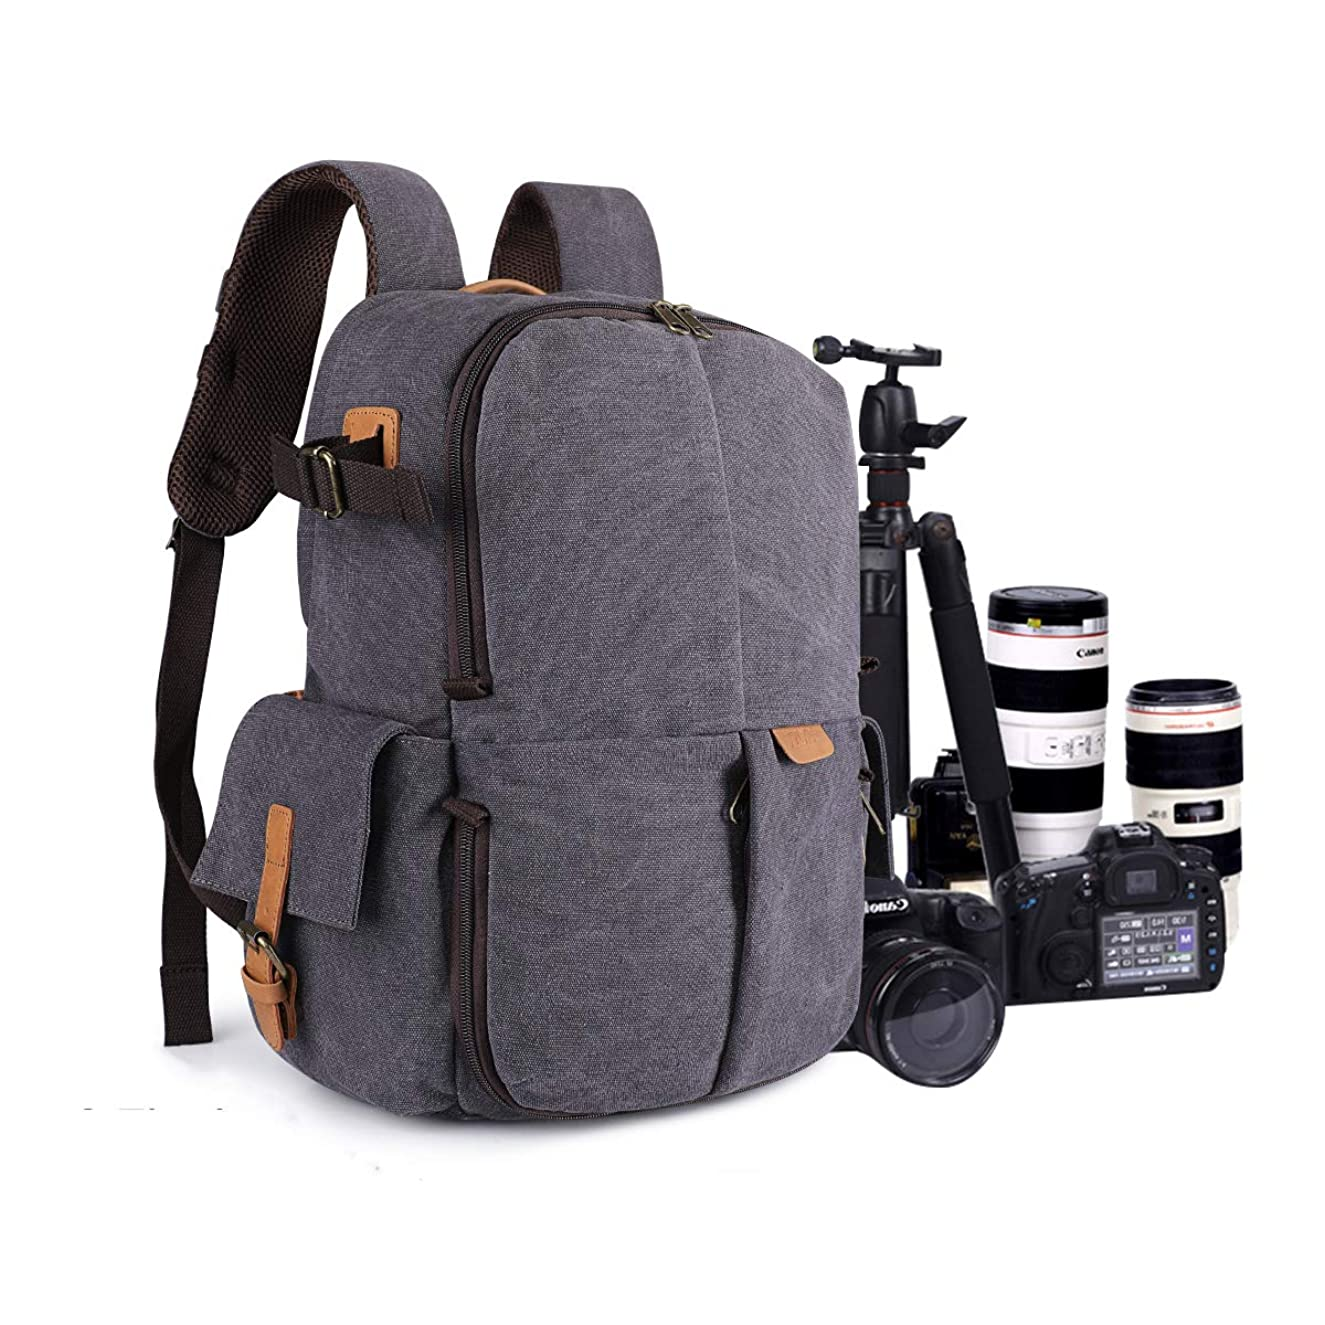 S-ZONE Camera Backpack Canvas Professional Travel Camera Case Bag Fits 15.6